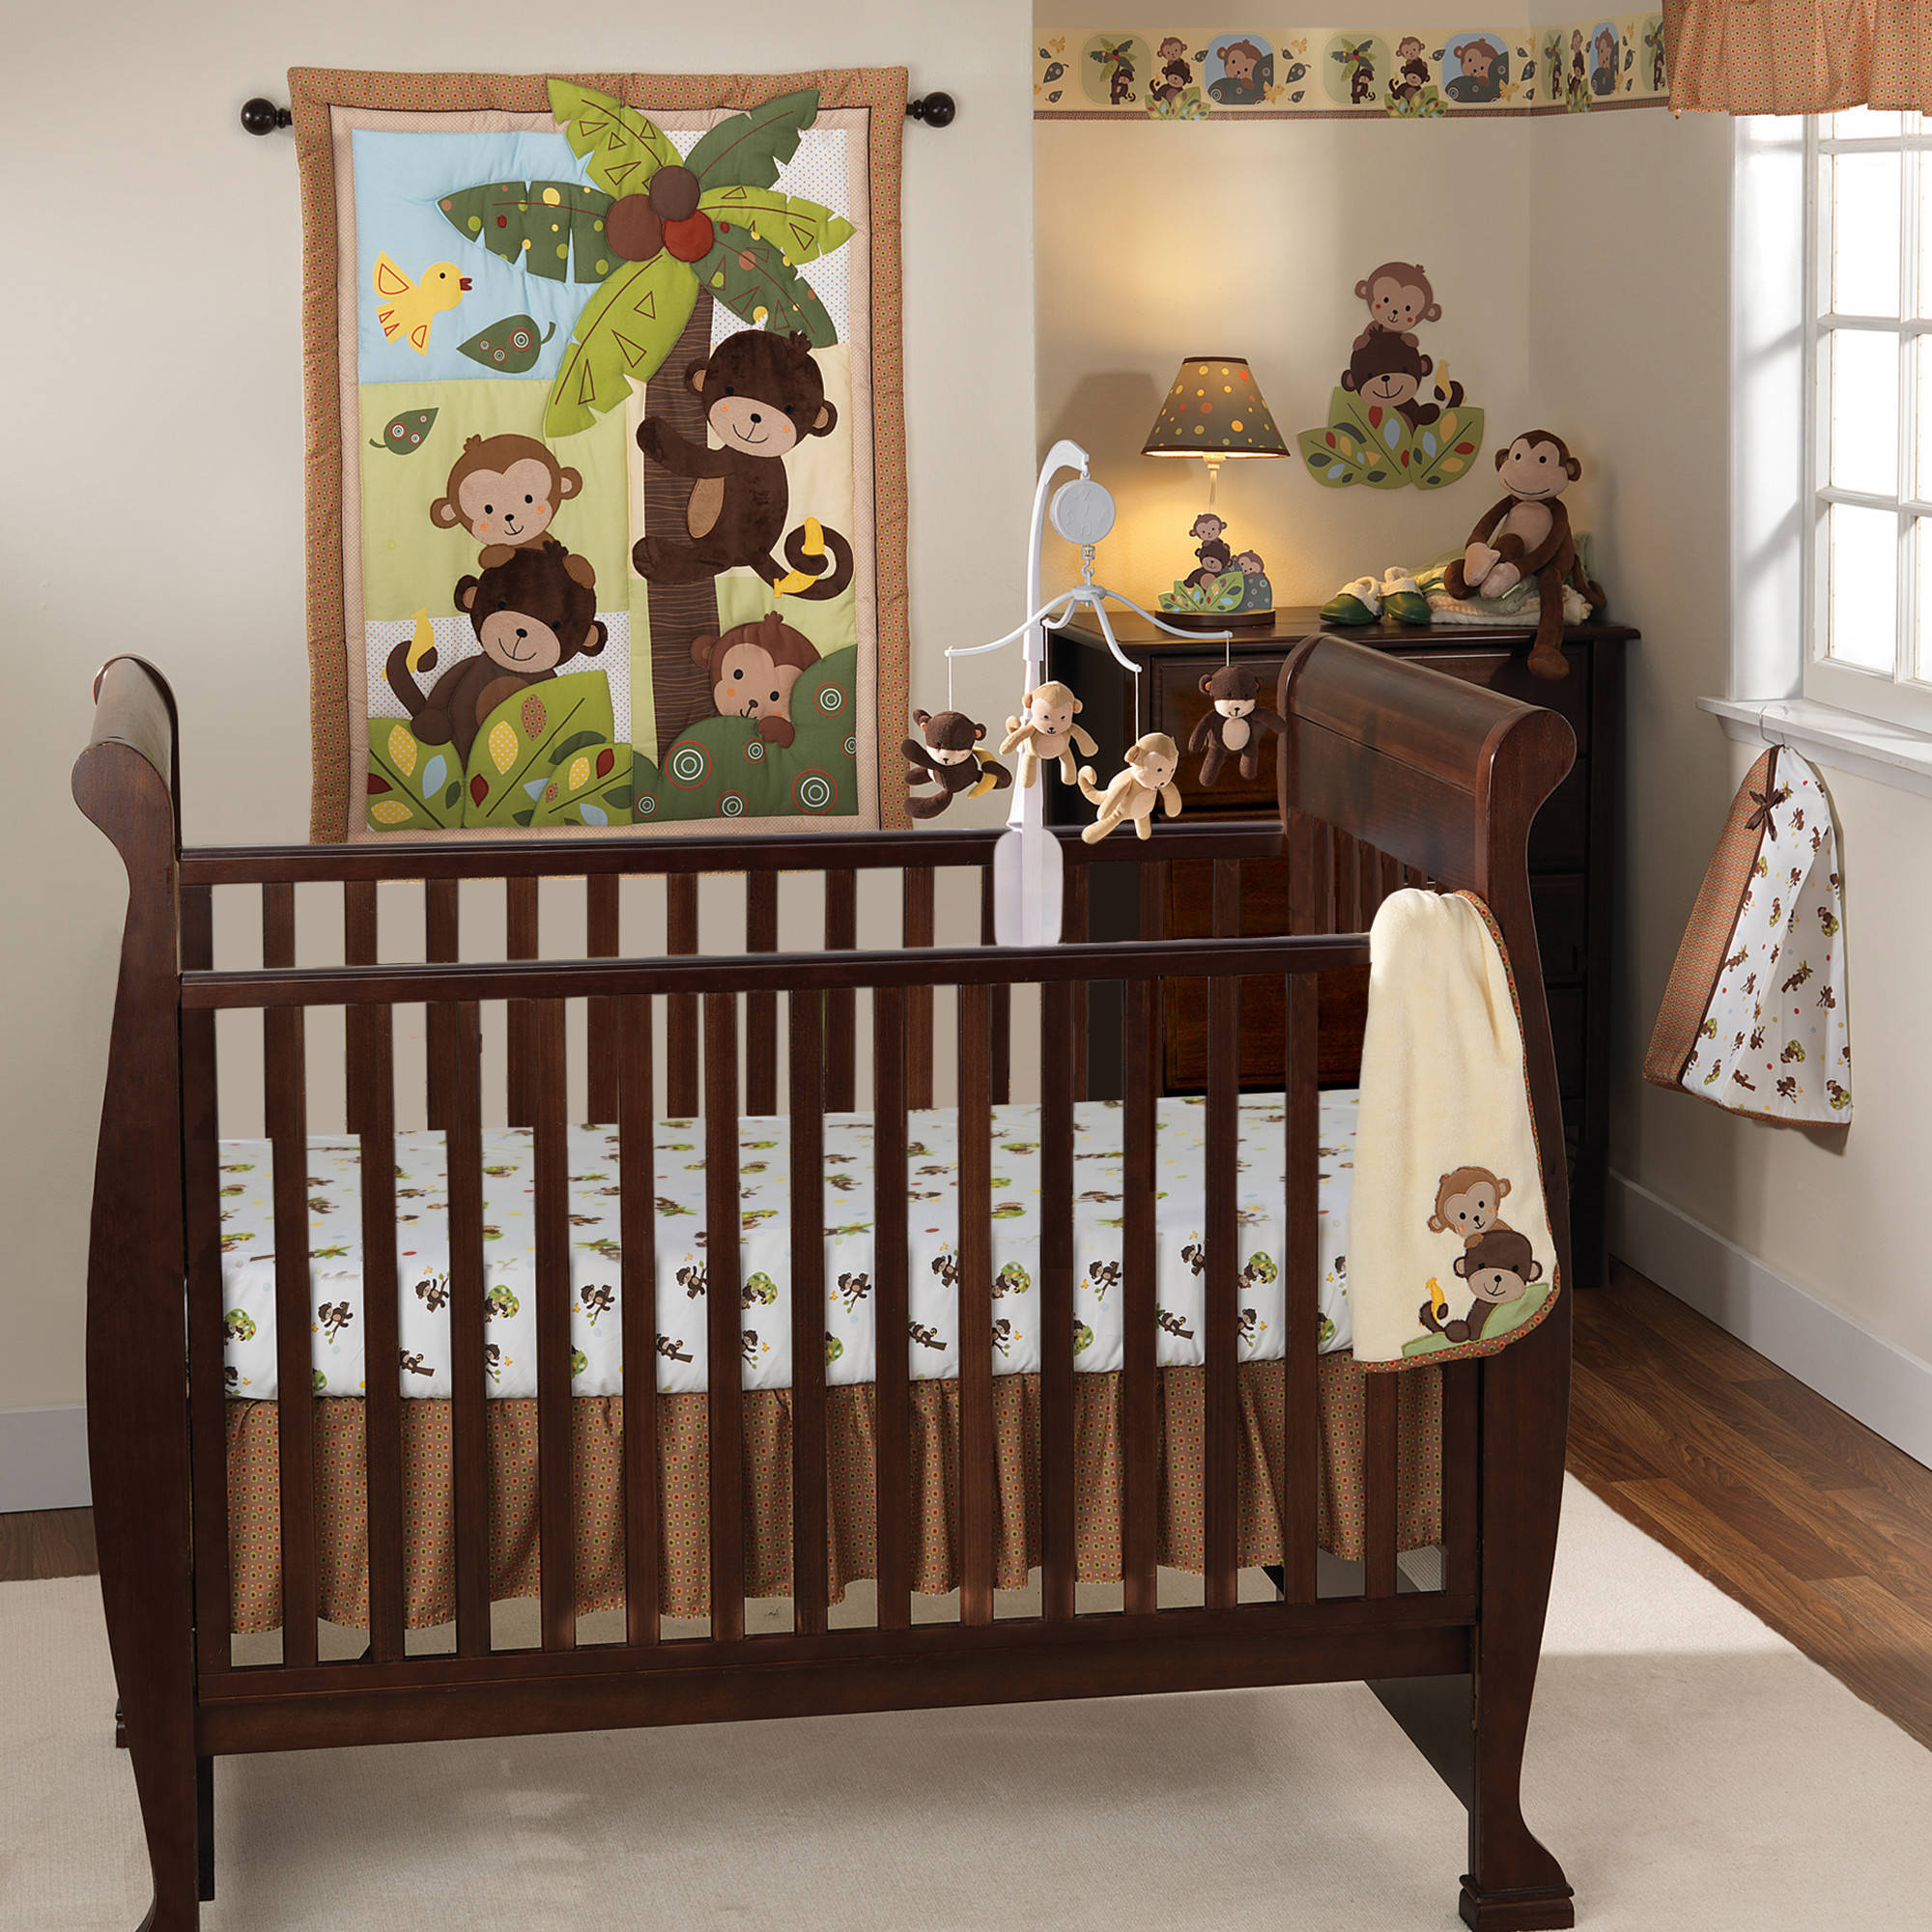 Bedtime Originals - Curly Tails Crib Bedding 3-Piece Set